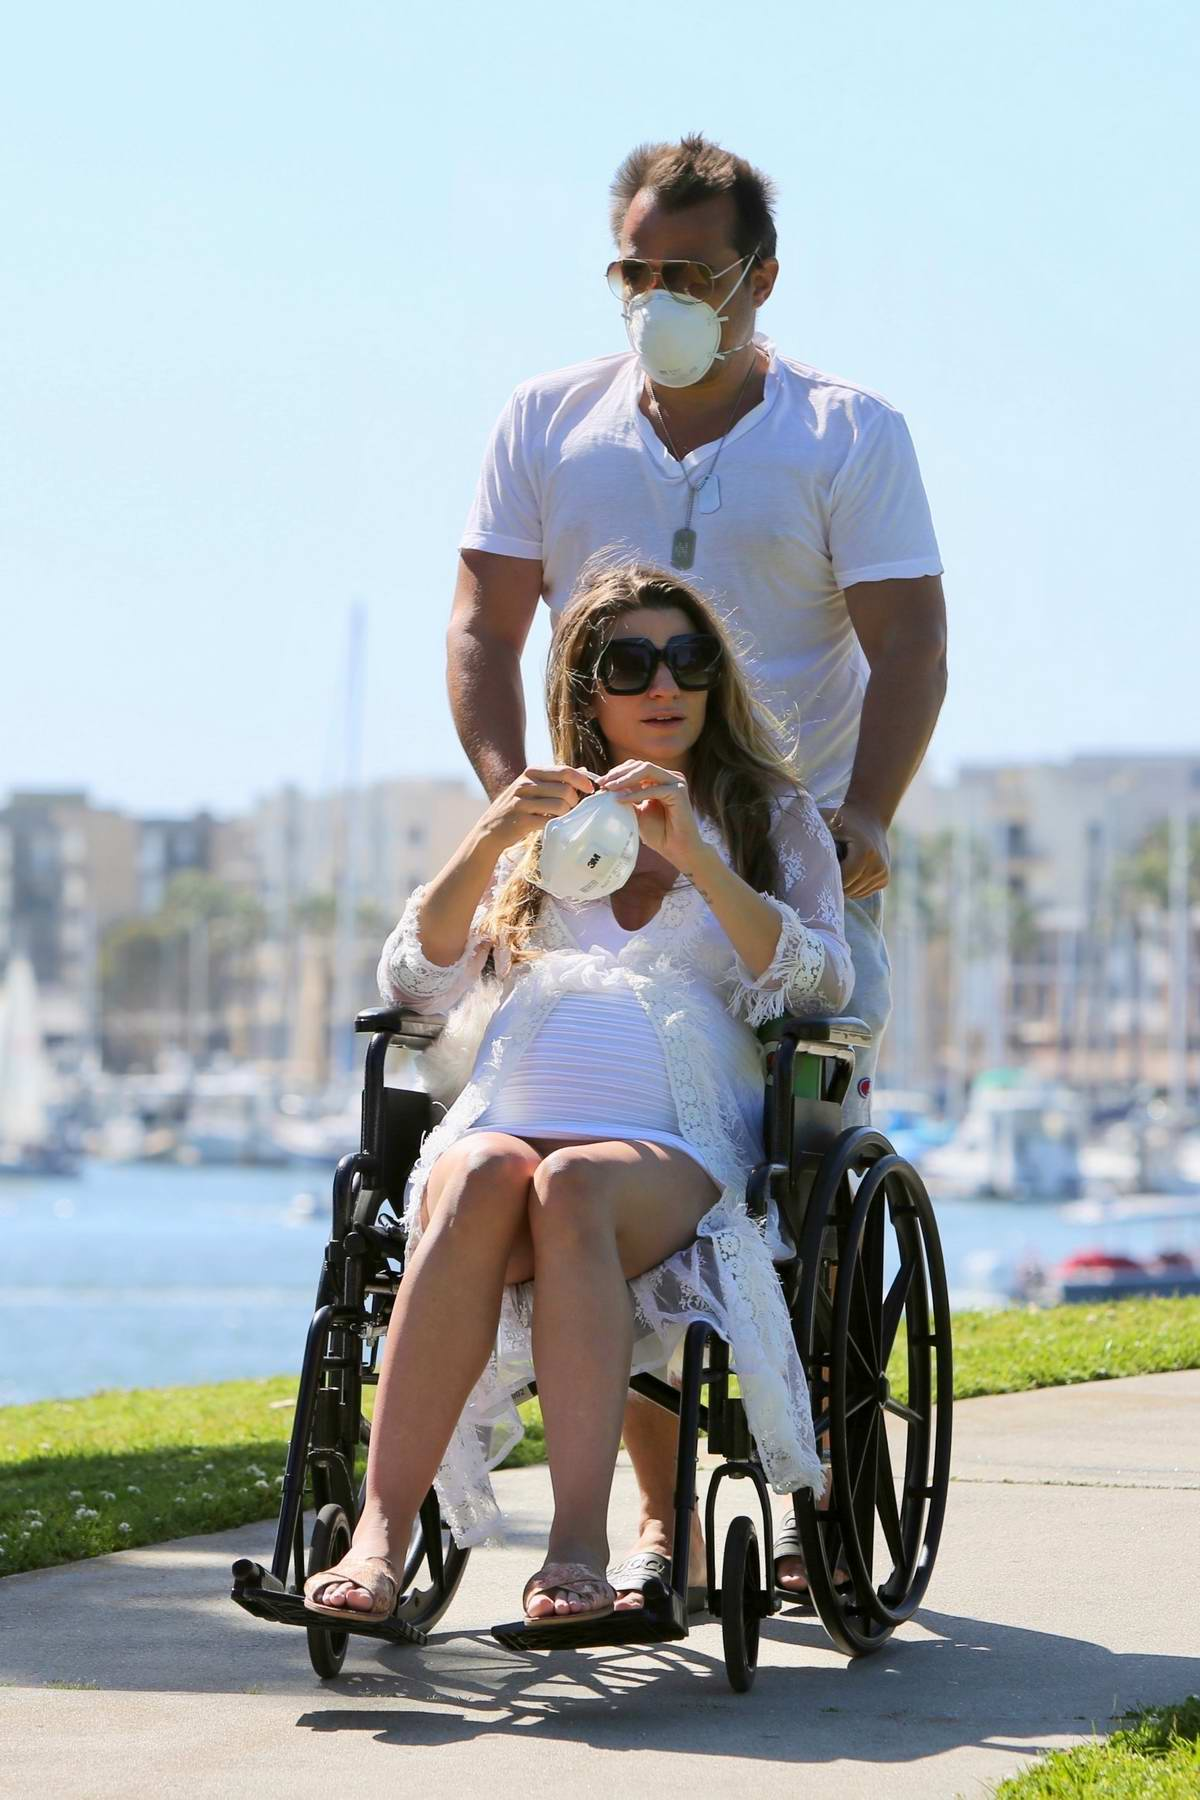 Rachel McCord takes a break from quarantine as she gets some fresh air in Marina Del Rey, California